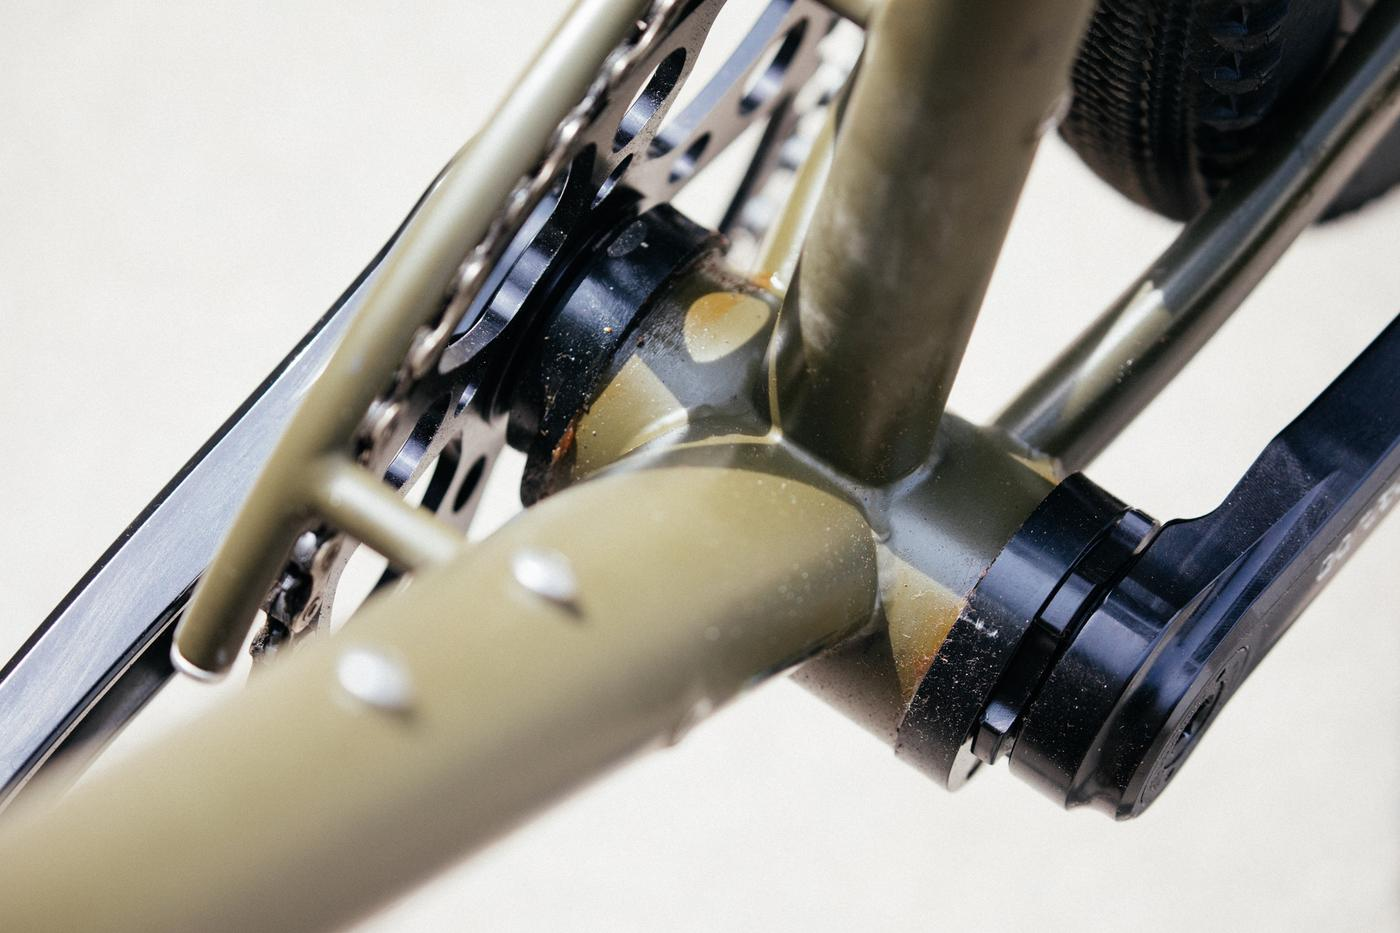 You Can Use a 30mm Crank Spindle with the BEER Components Oner PF30 Eccentric Bottom Bracket